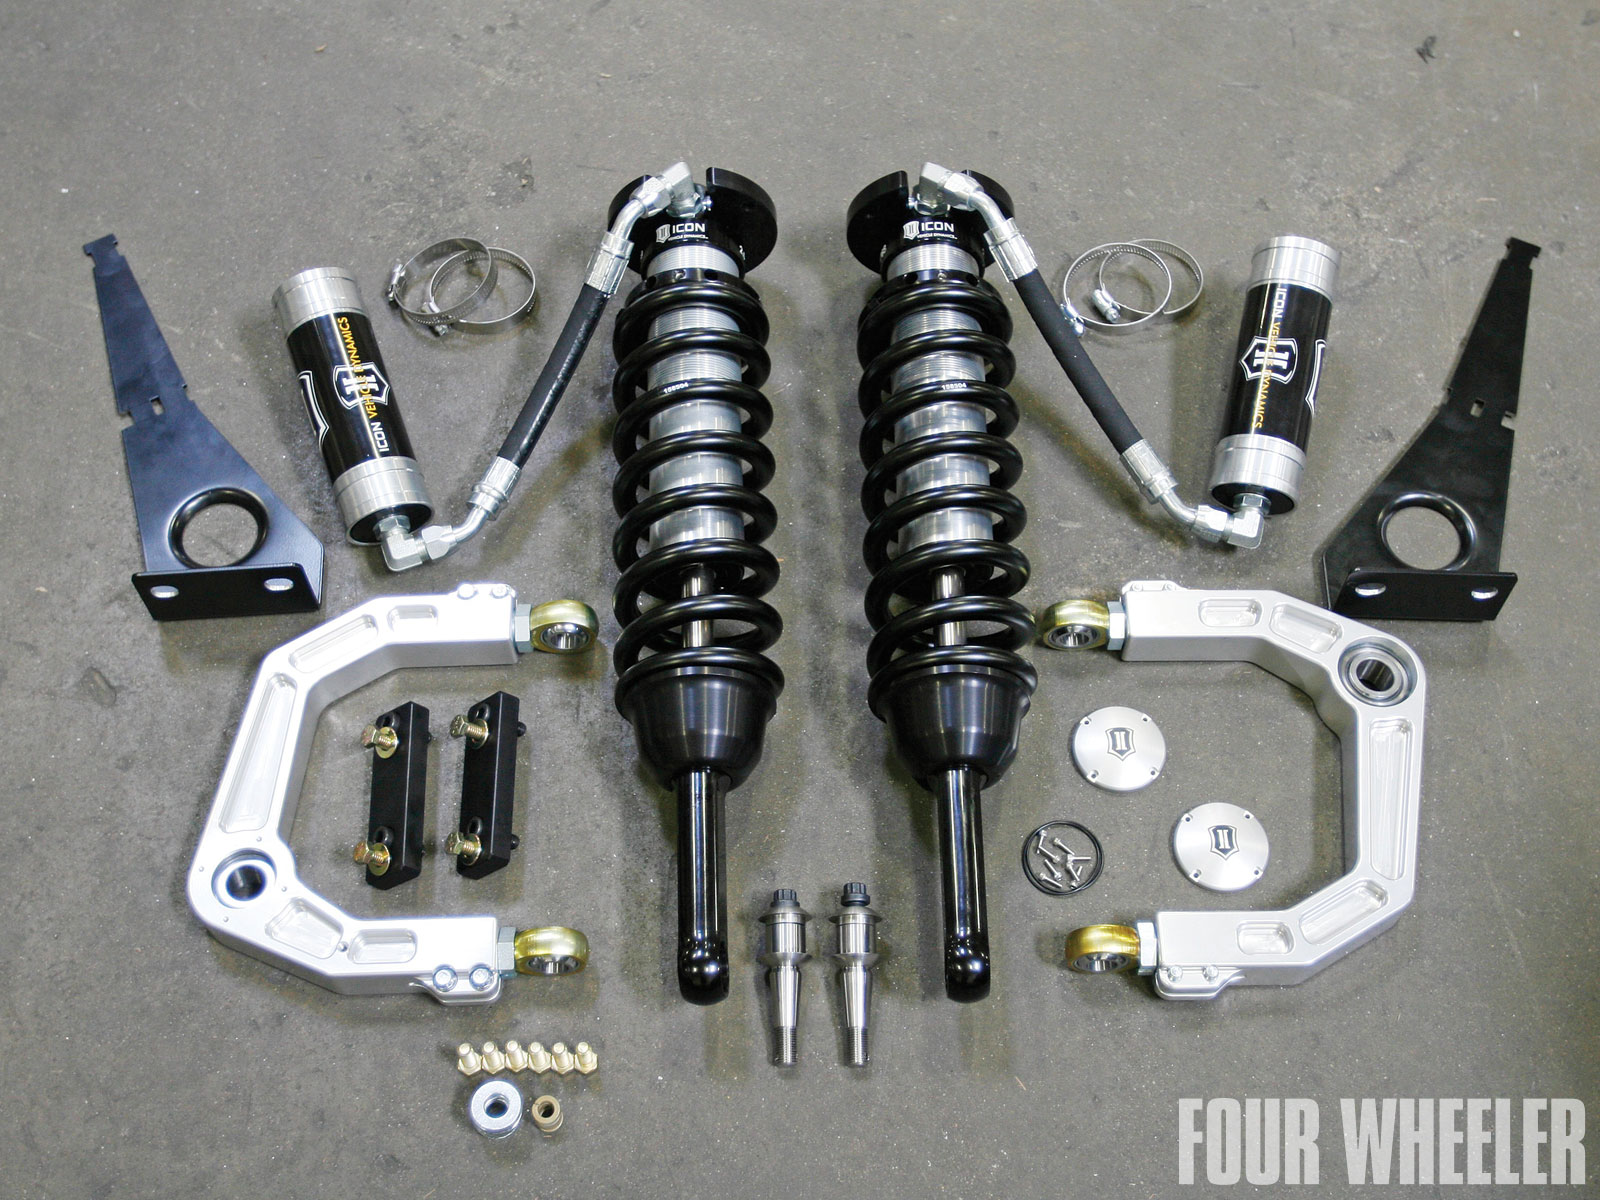 129 1101 02 o+129 1101 icon fj stage 5 suspension+icon stage 5 setup